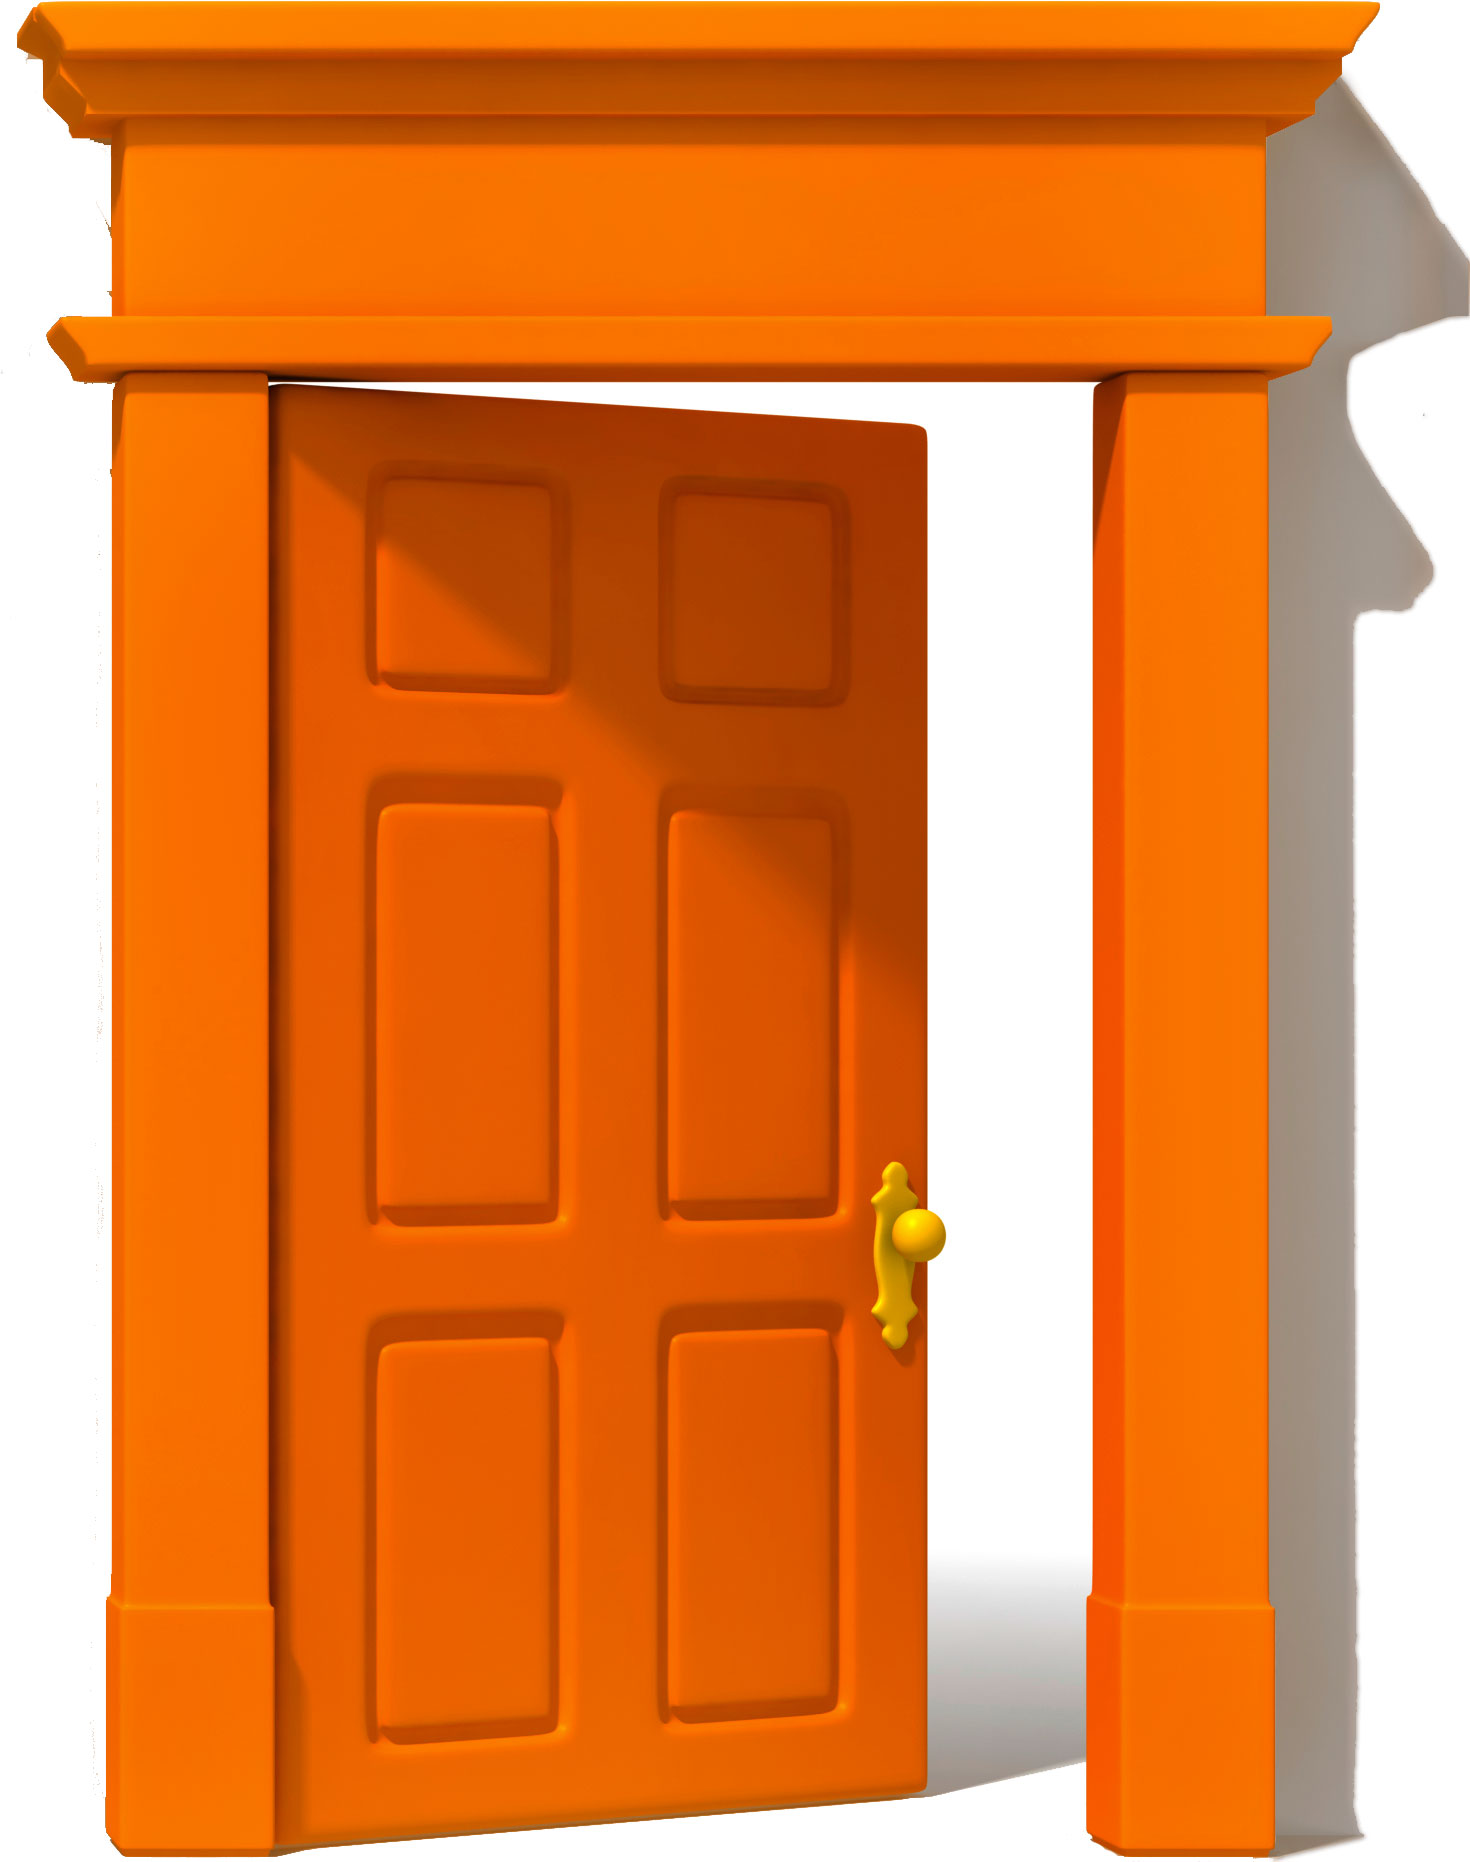 Door clipart orange #2